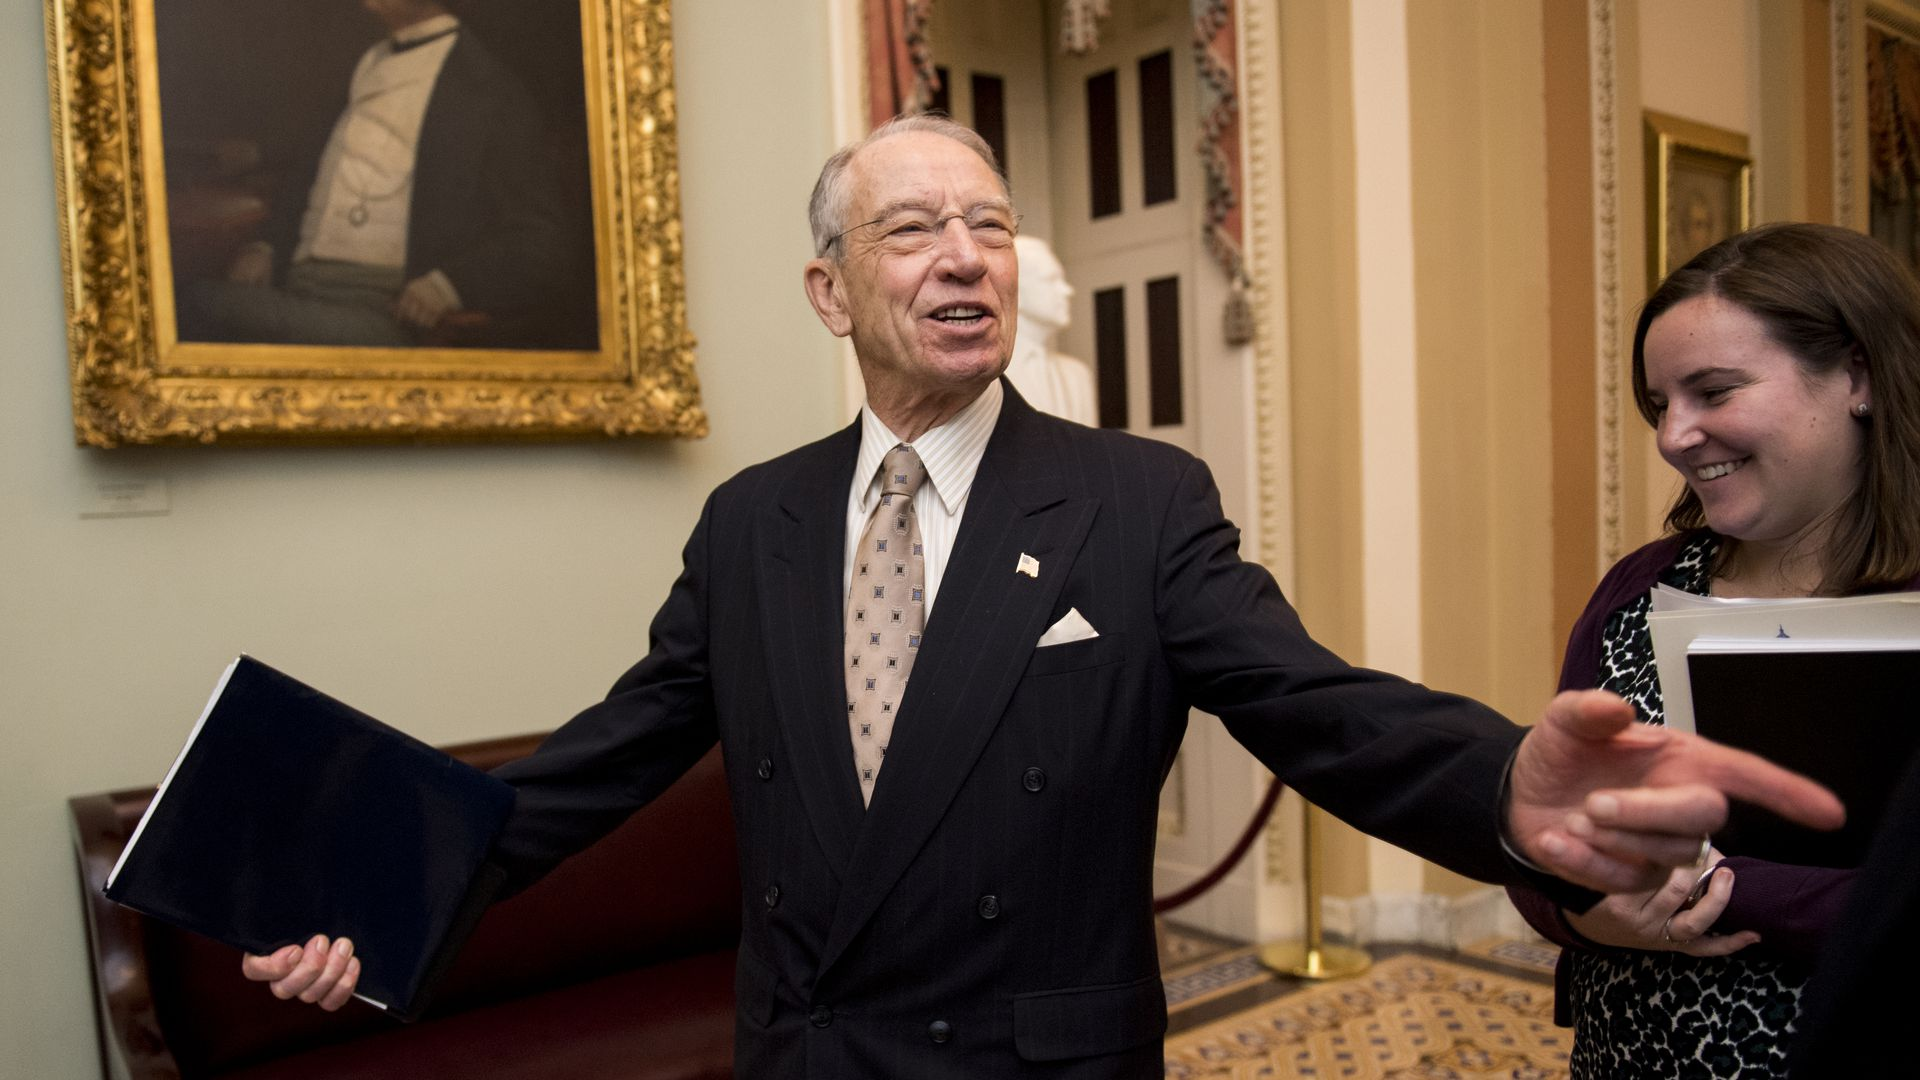 Senator Chuck Grassley, wearing a suit and tie, in the middle of an interaction with someone off-screen